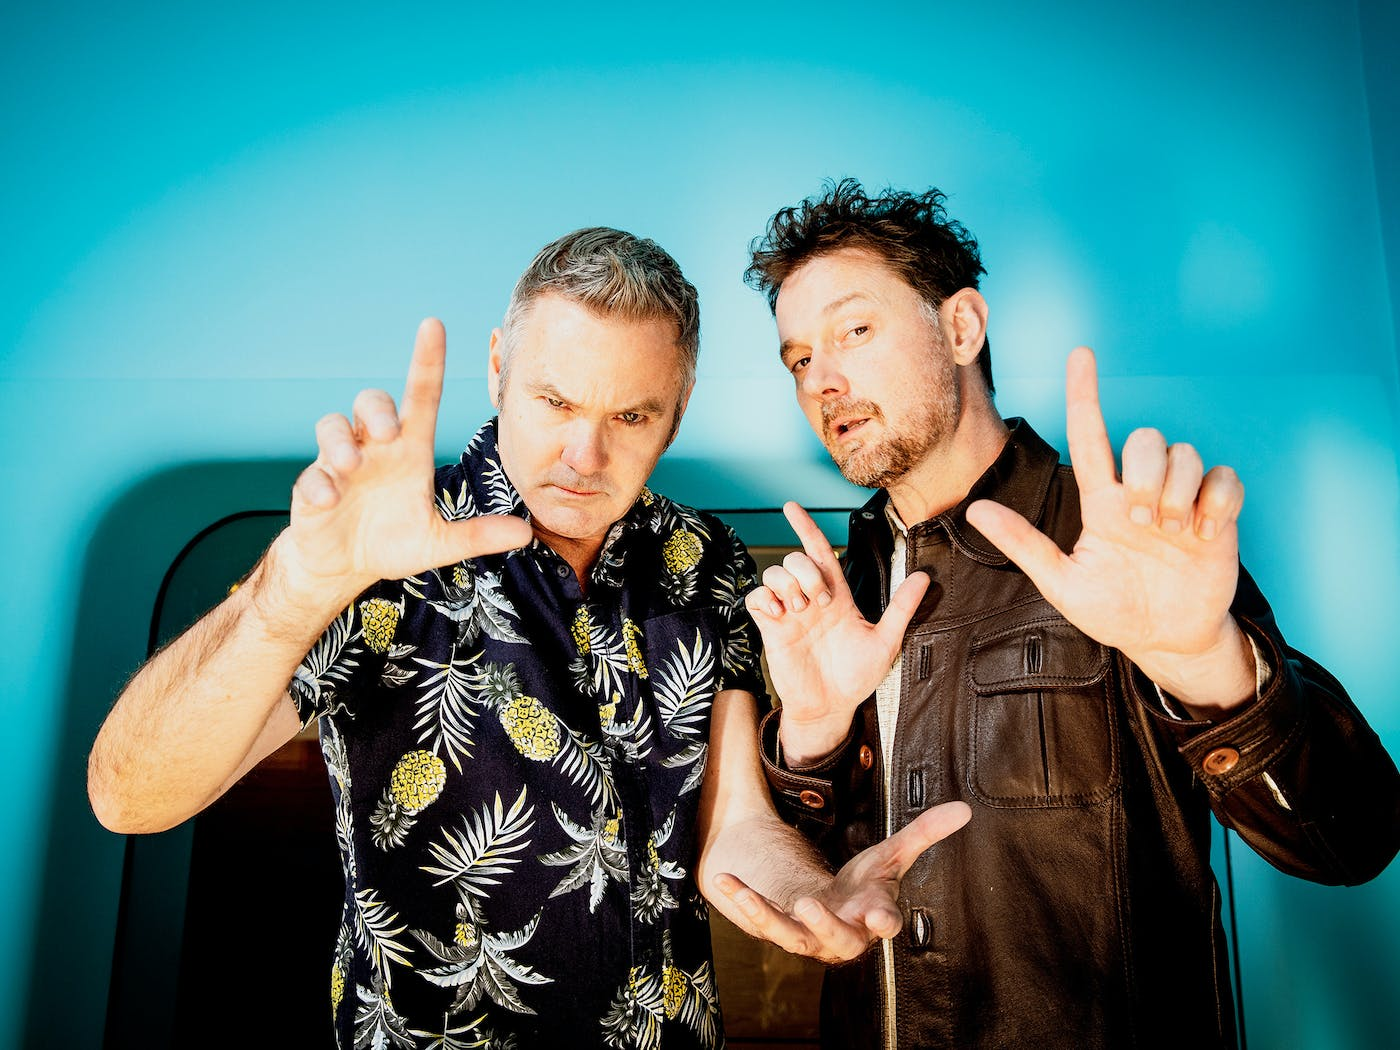 Fusion Boutique Presents Paul McDermott & Gatesy Go Solo Live at Blue Mountains Theatre